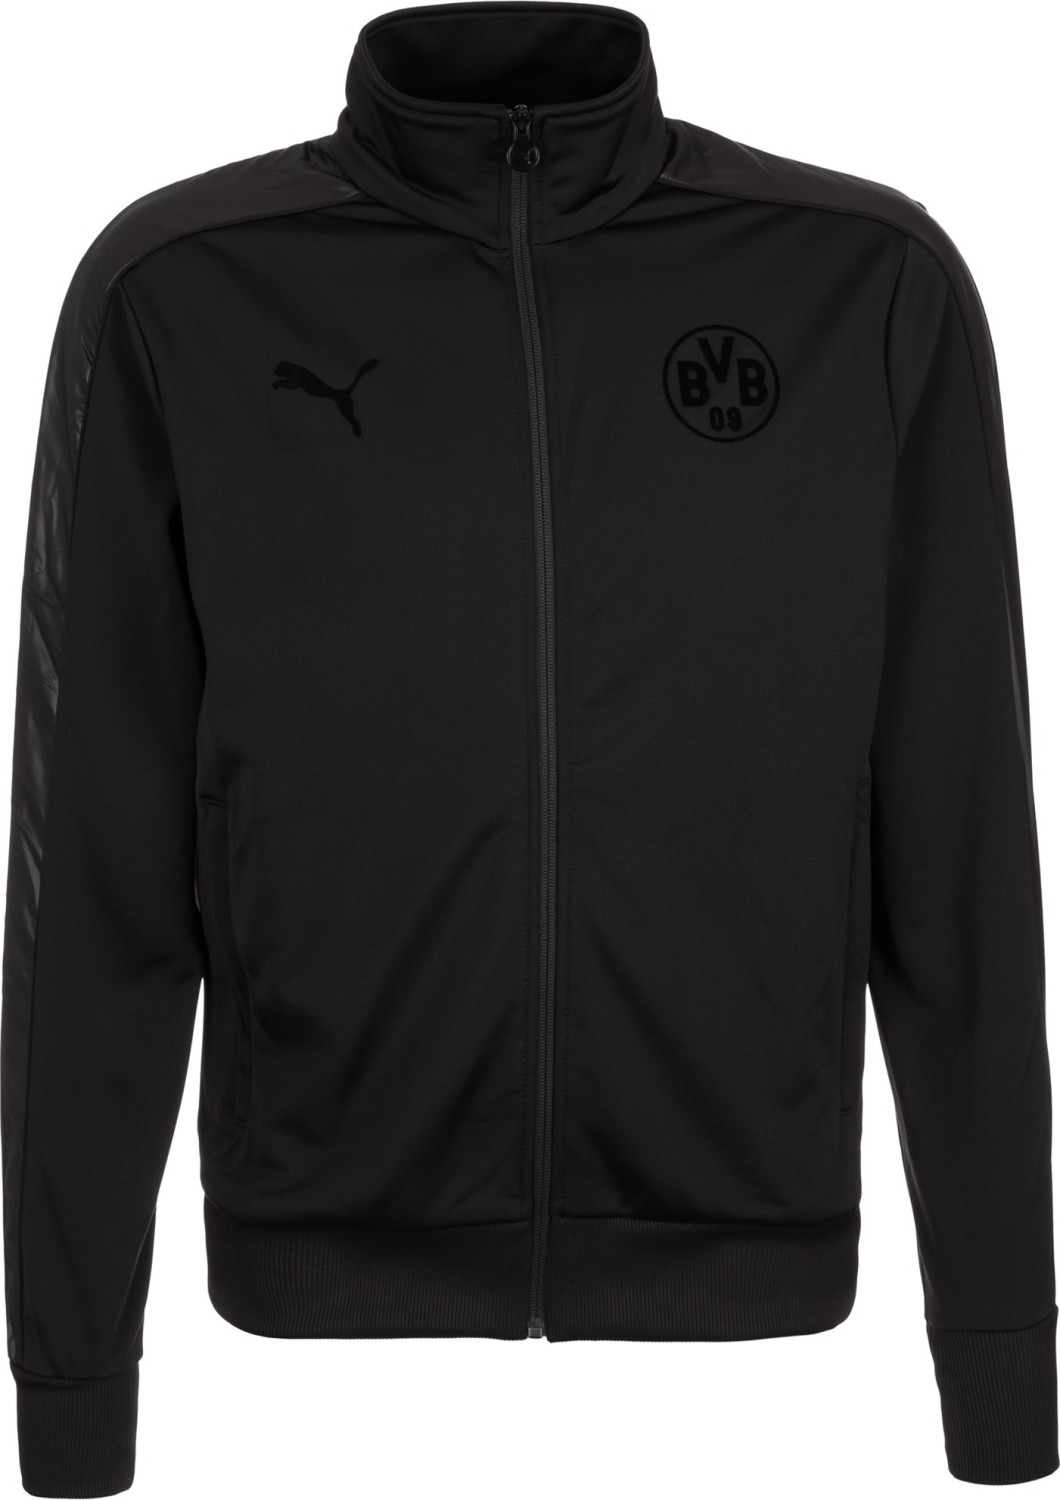 Puma BVB T7 Trainingsjacke